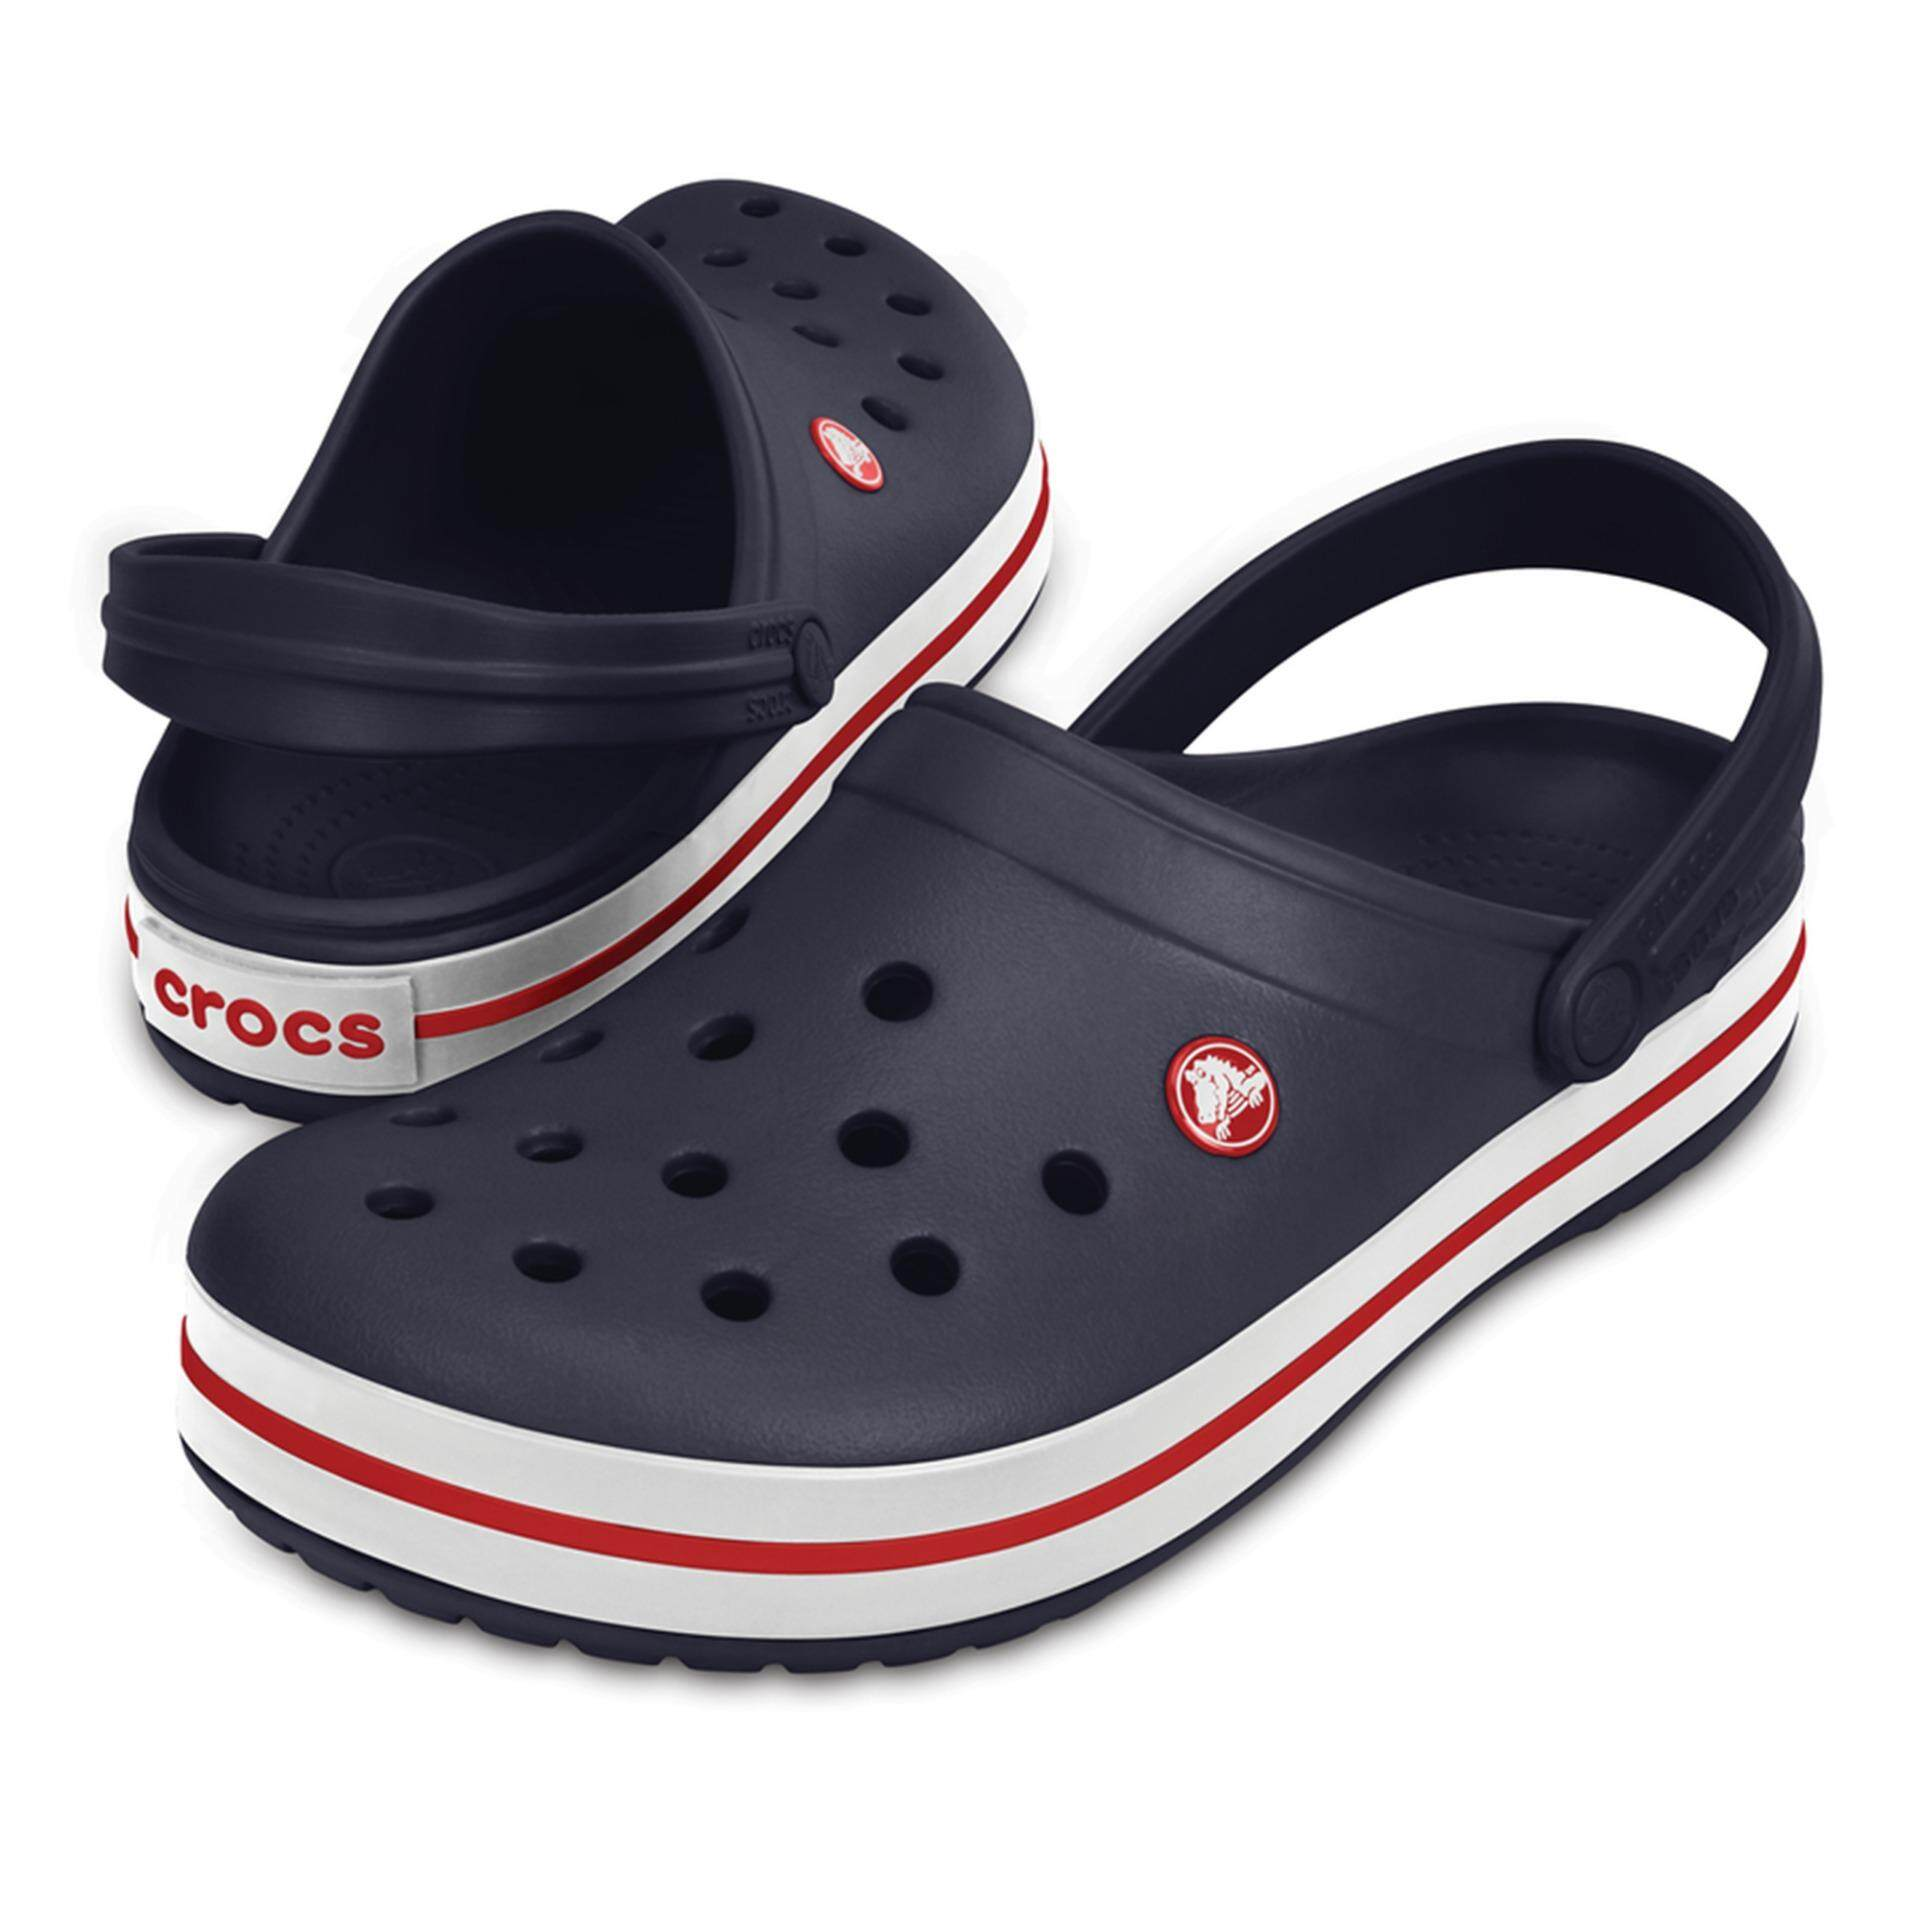 461a282121abd5 CROCS Products for the Best Prices in Malaysia